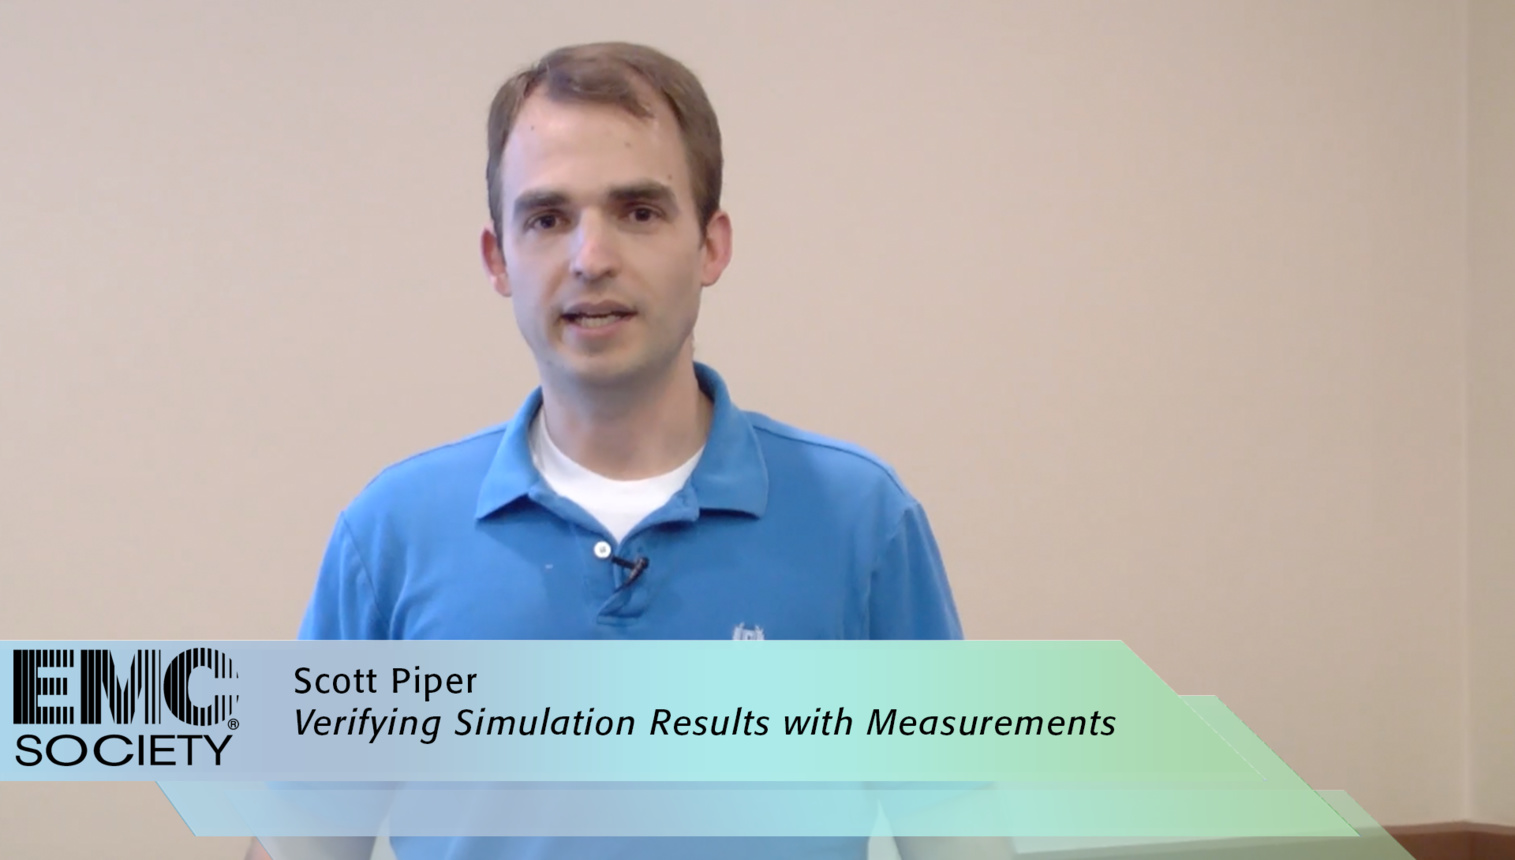 EMC - Scott Piper - Verifying Simulation Results with Measurements